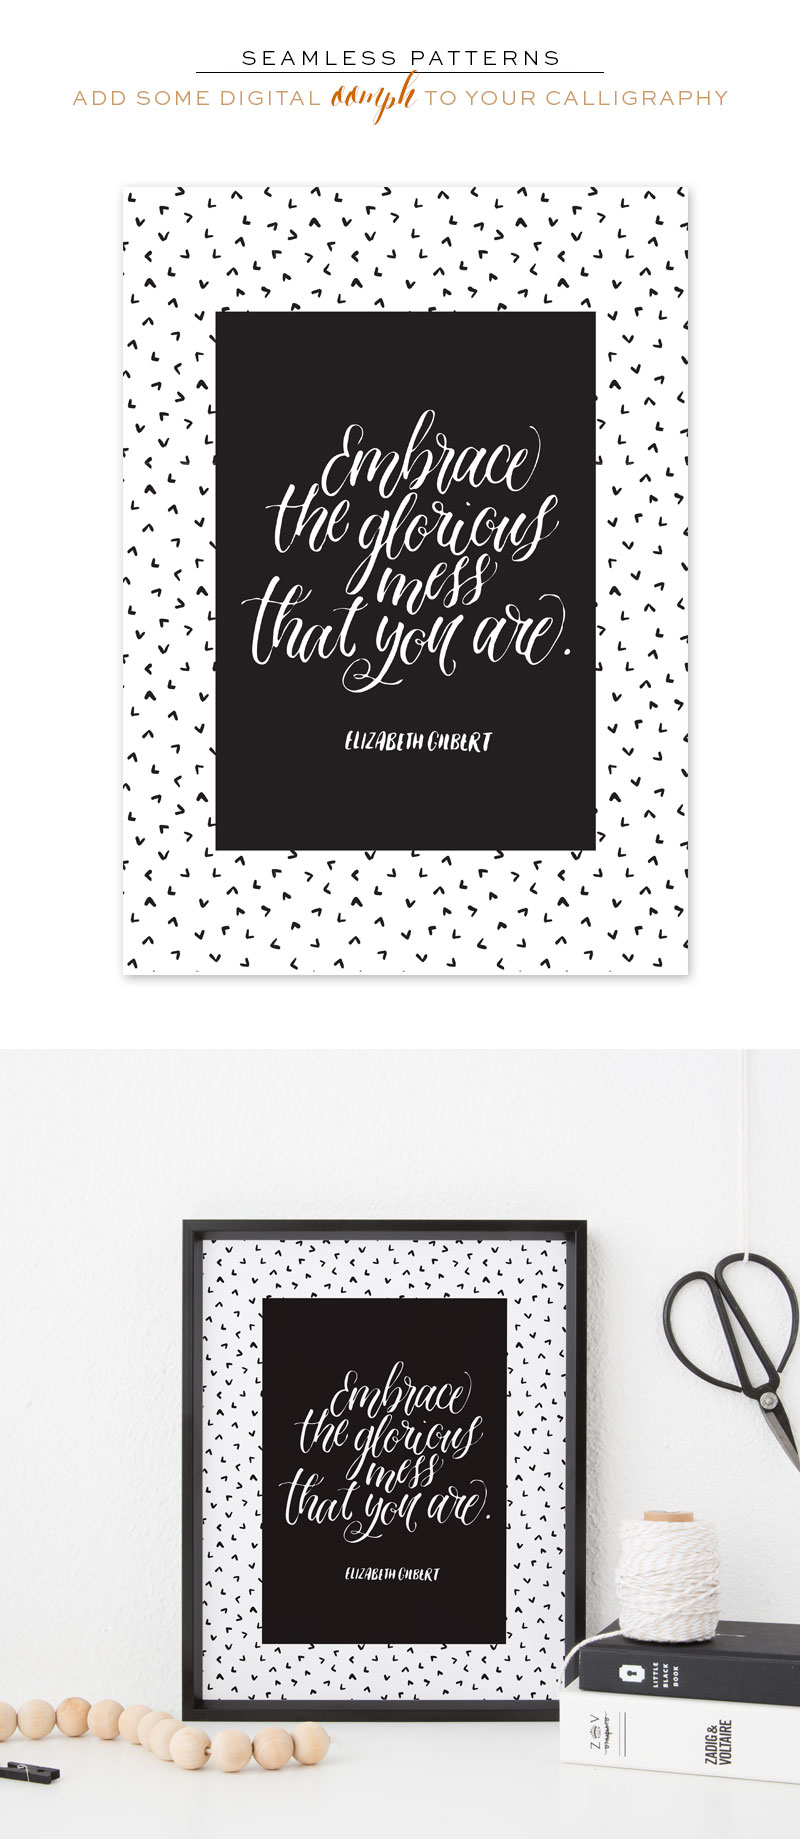 Adding Digital Patterns to Your Calligraphy via Happy Hands Project